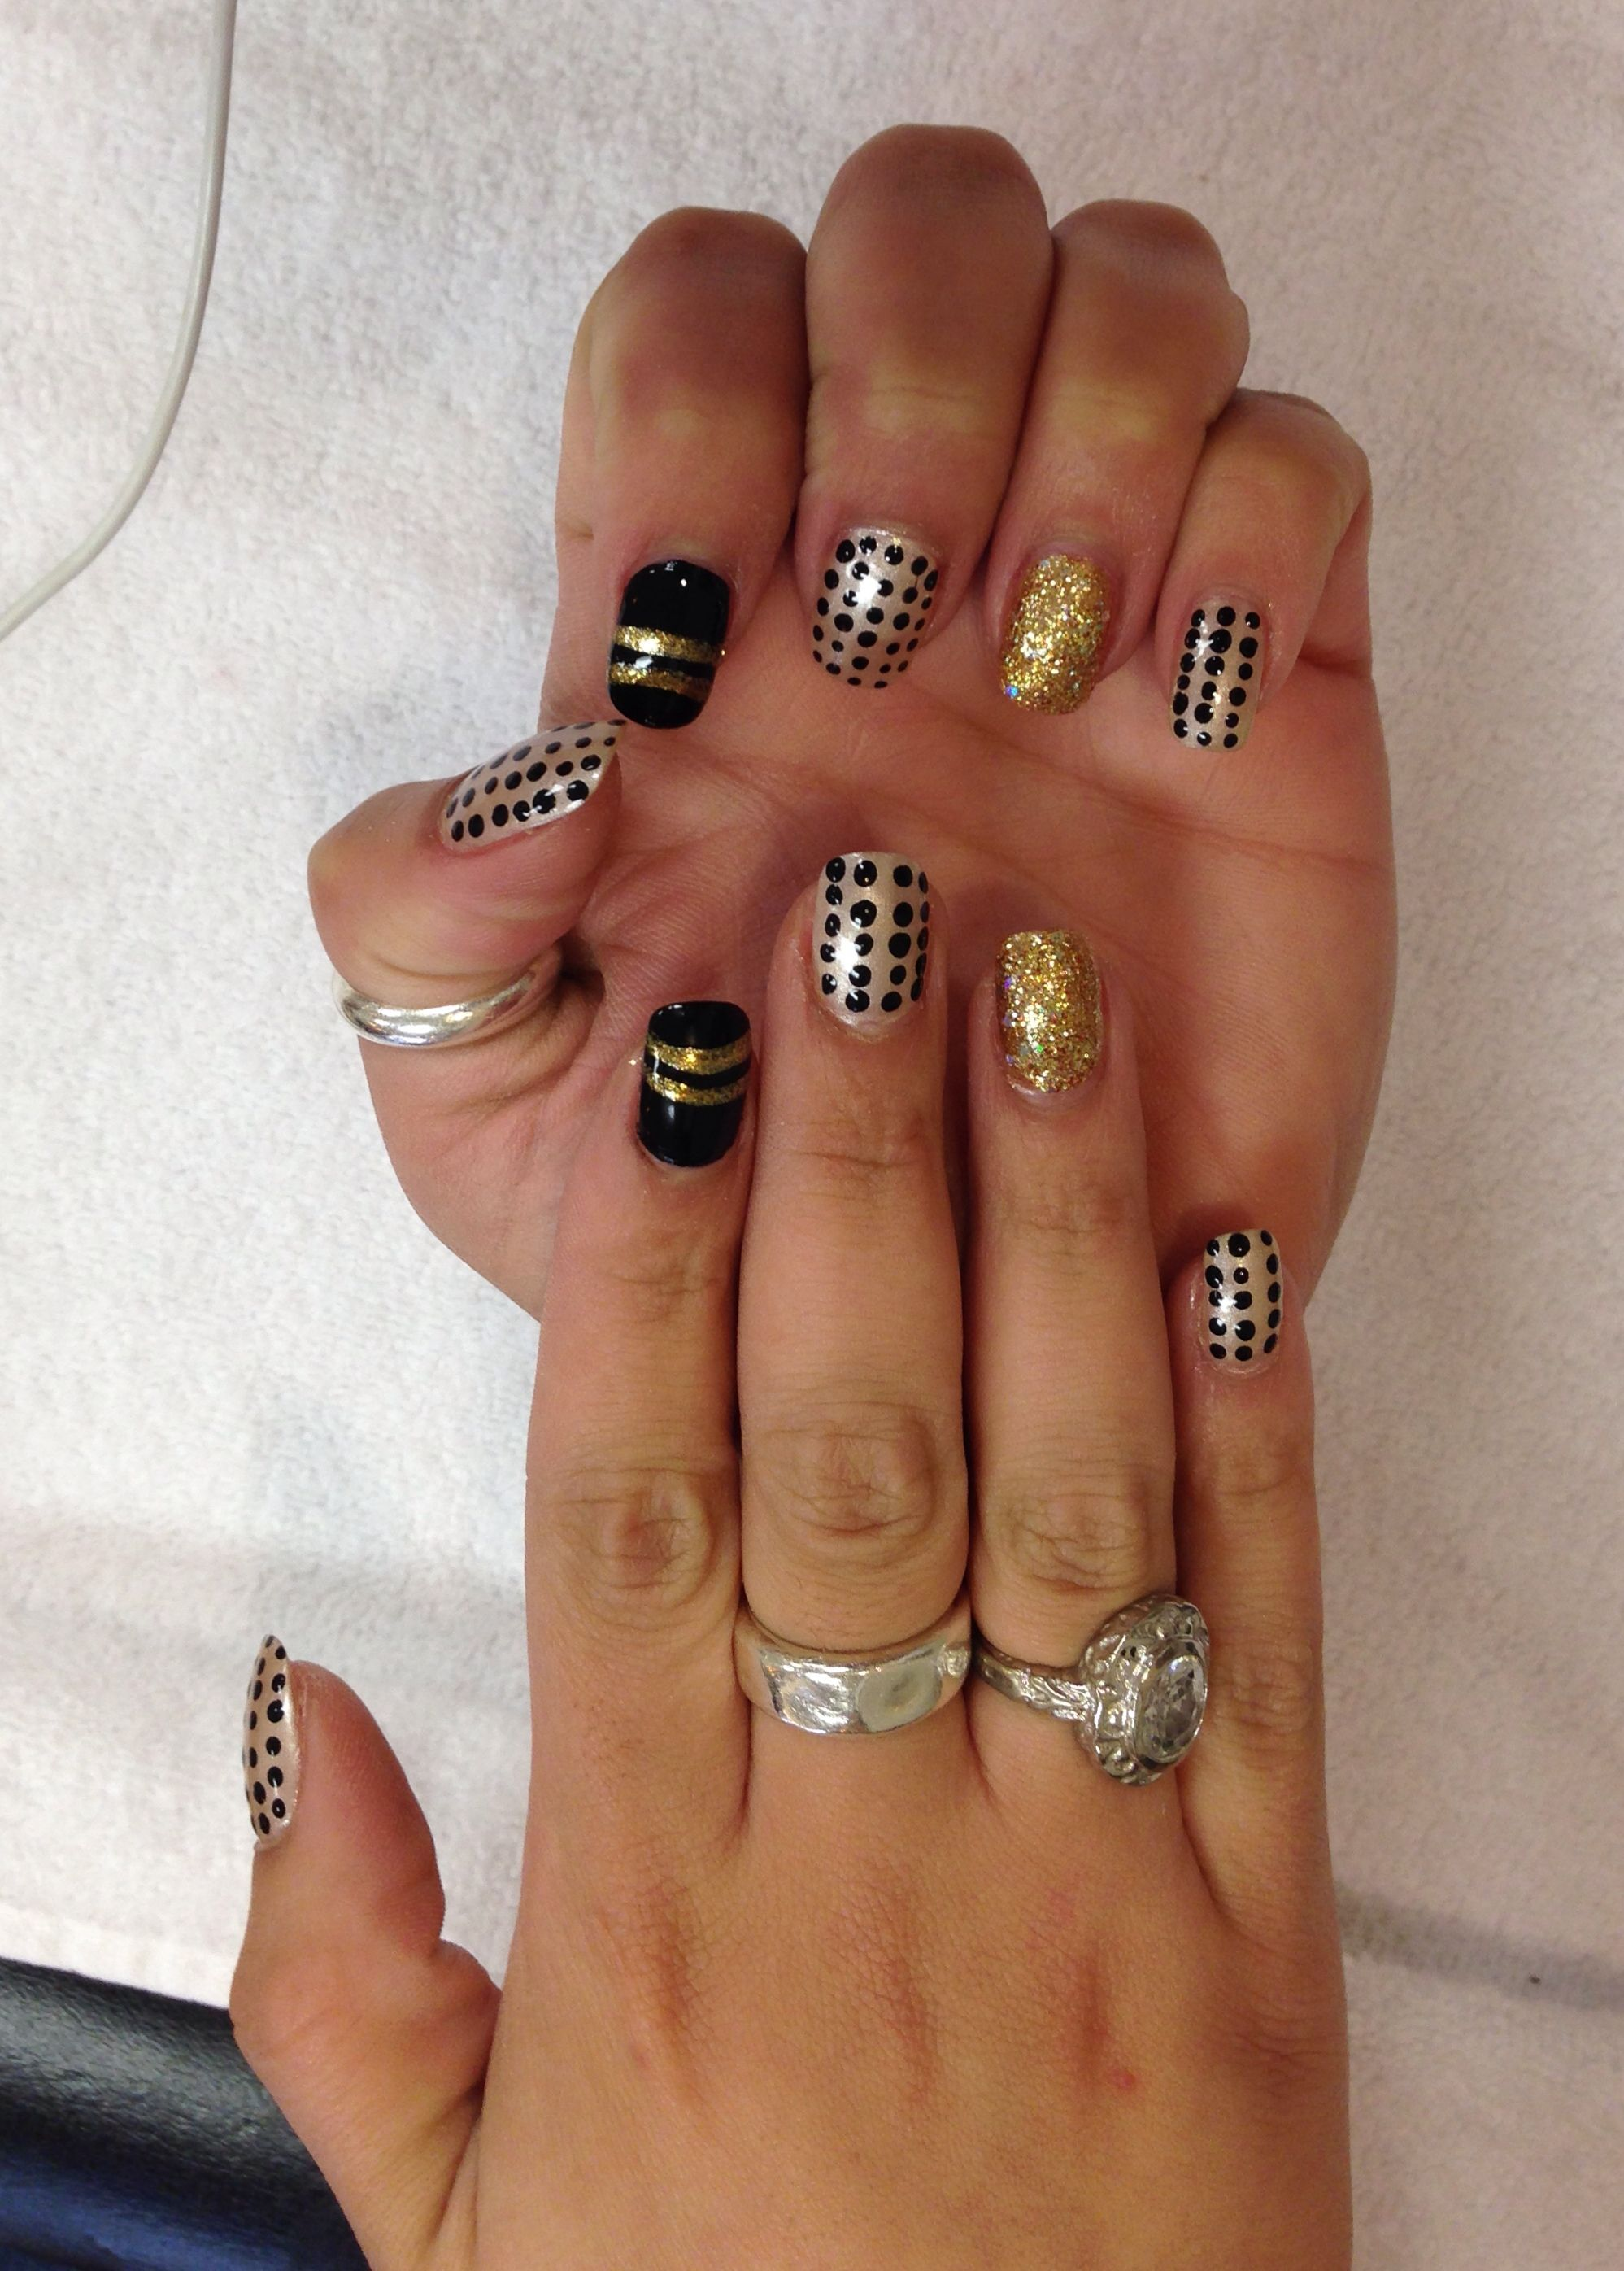 Bad A$$ black & gold design on my acrylic over-laid nails...I am soooo loving my nails right now!!!!